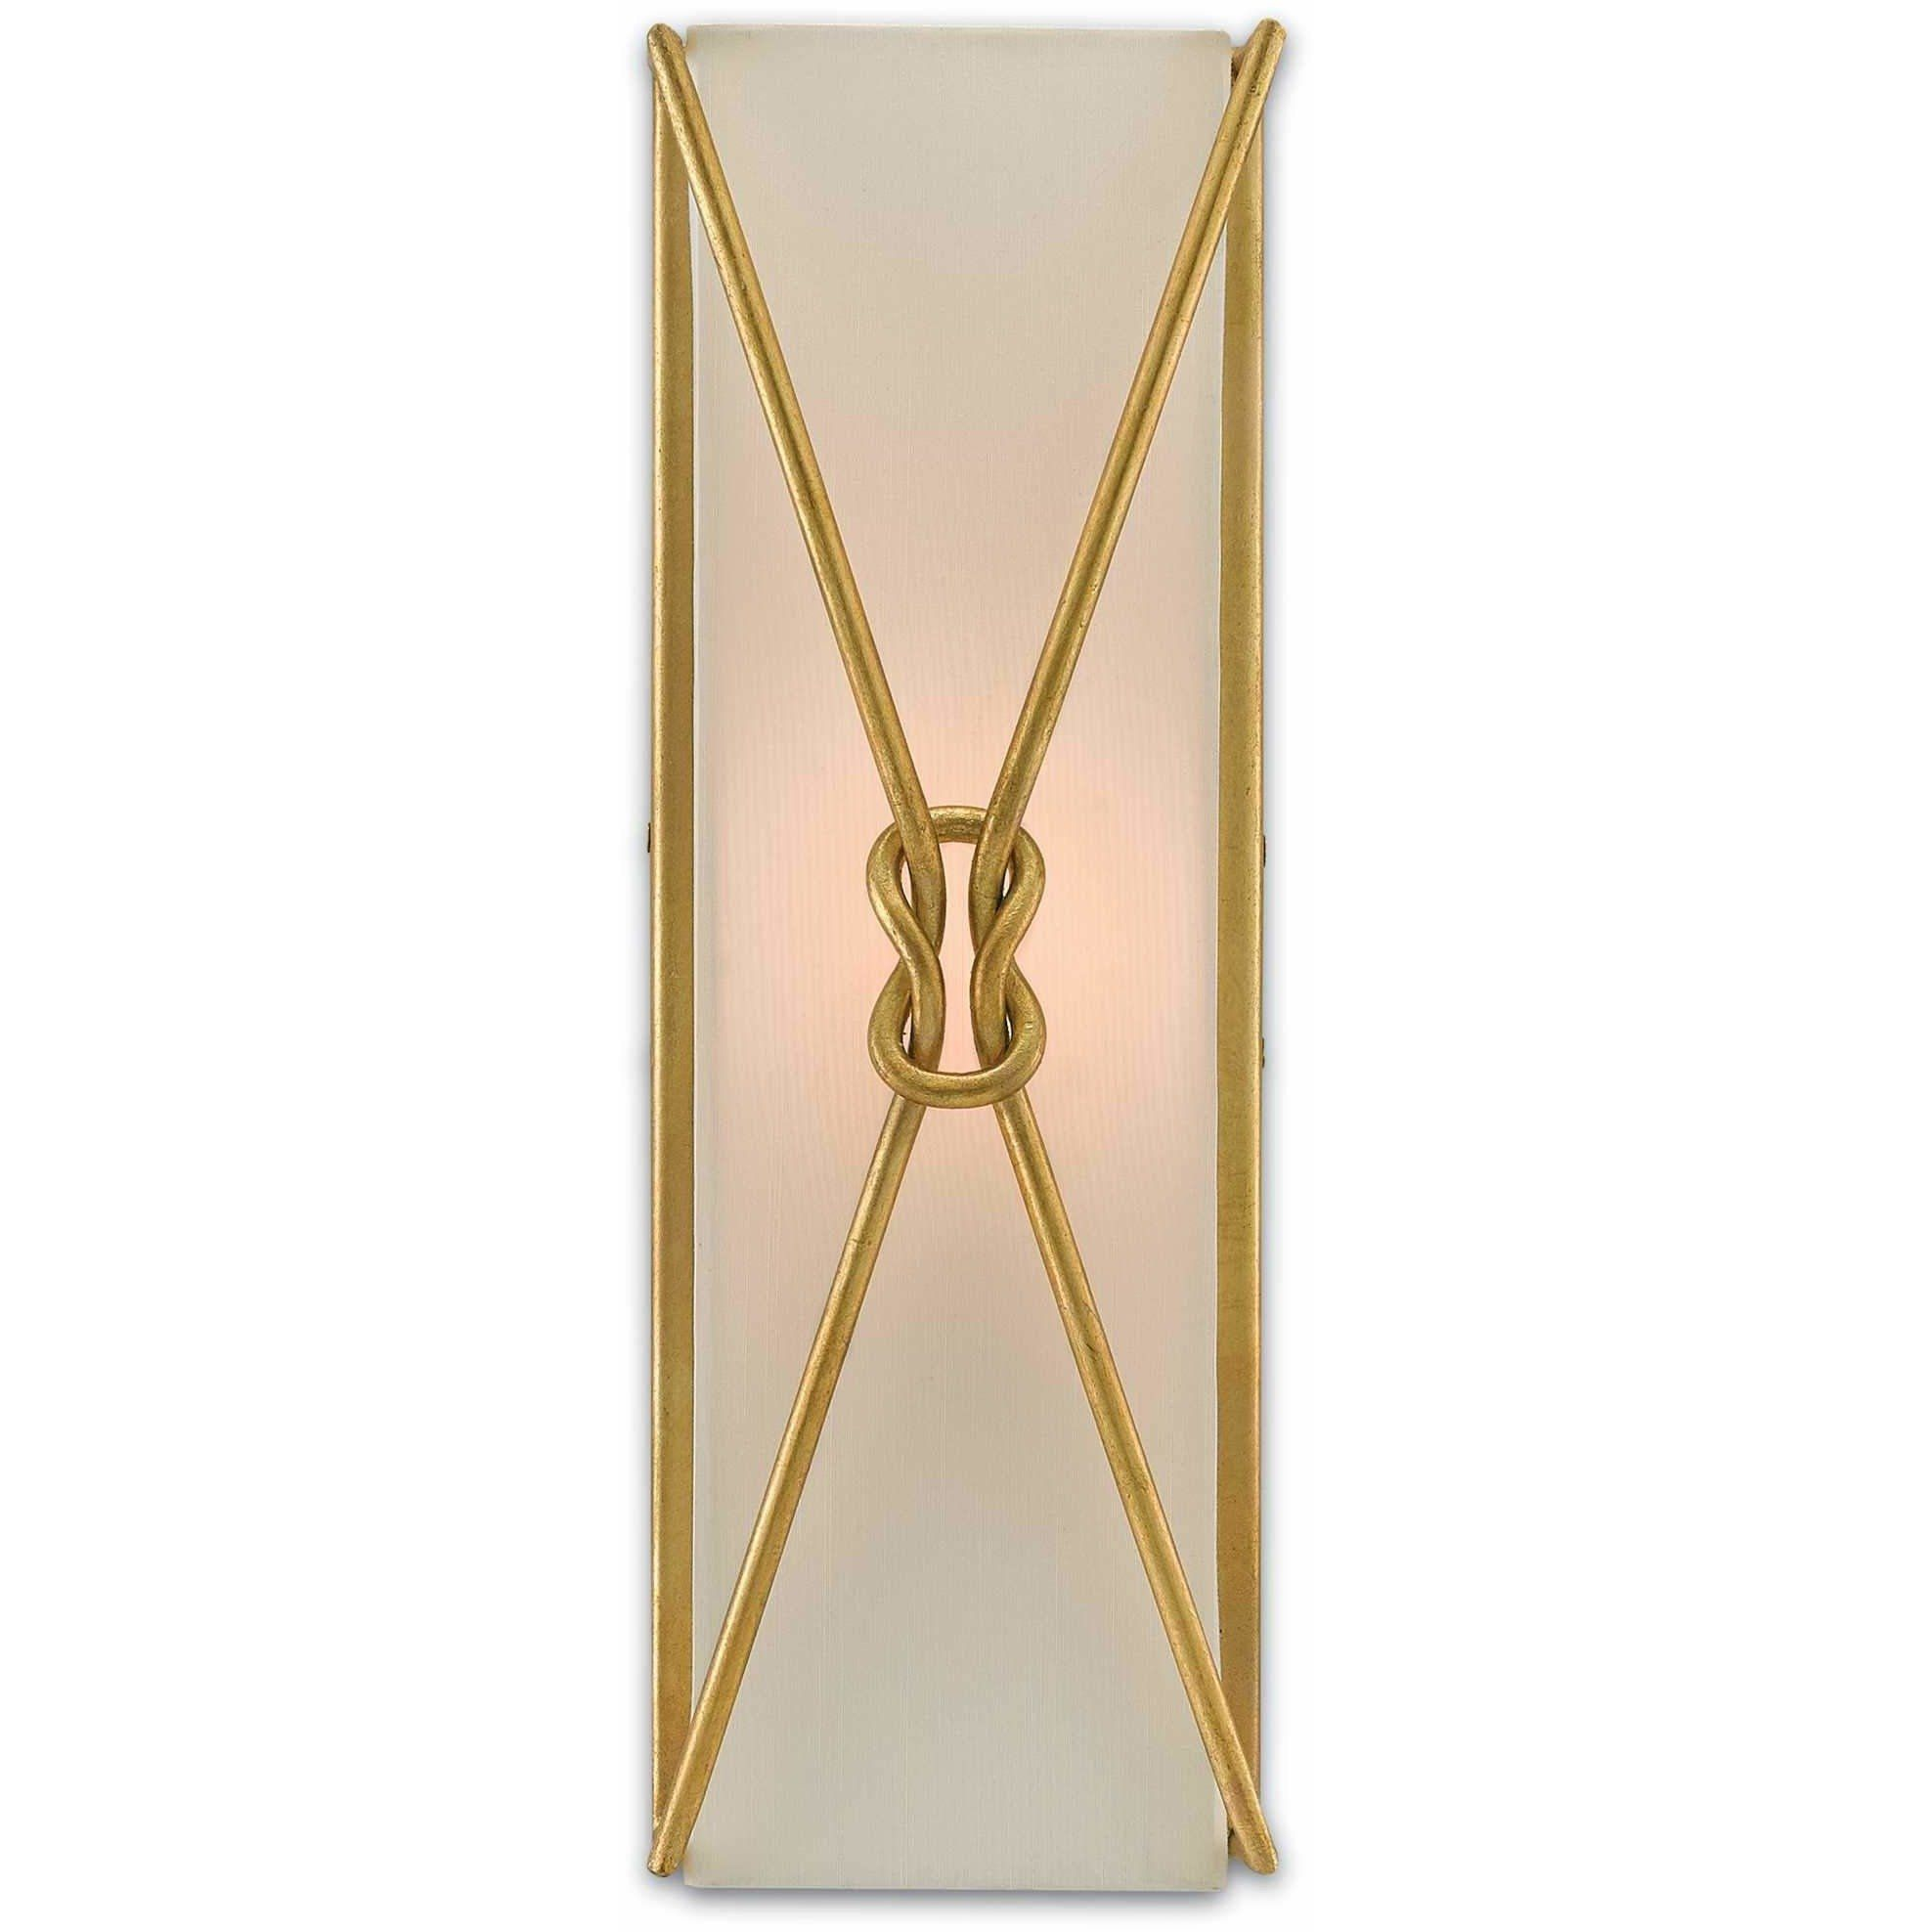 Currey and Company Ariadne Wall Sconce 5000-0078 - LOVECUP